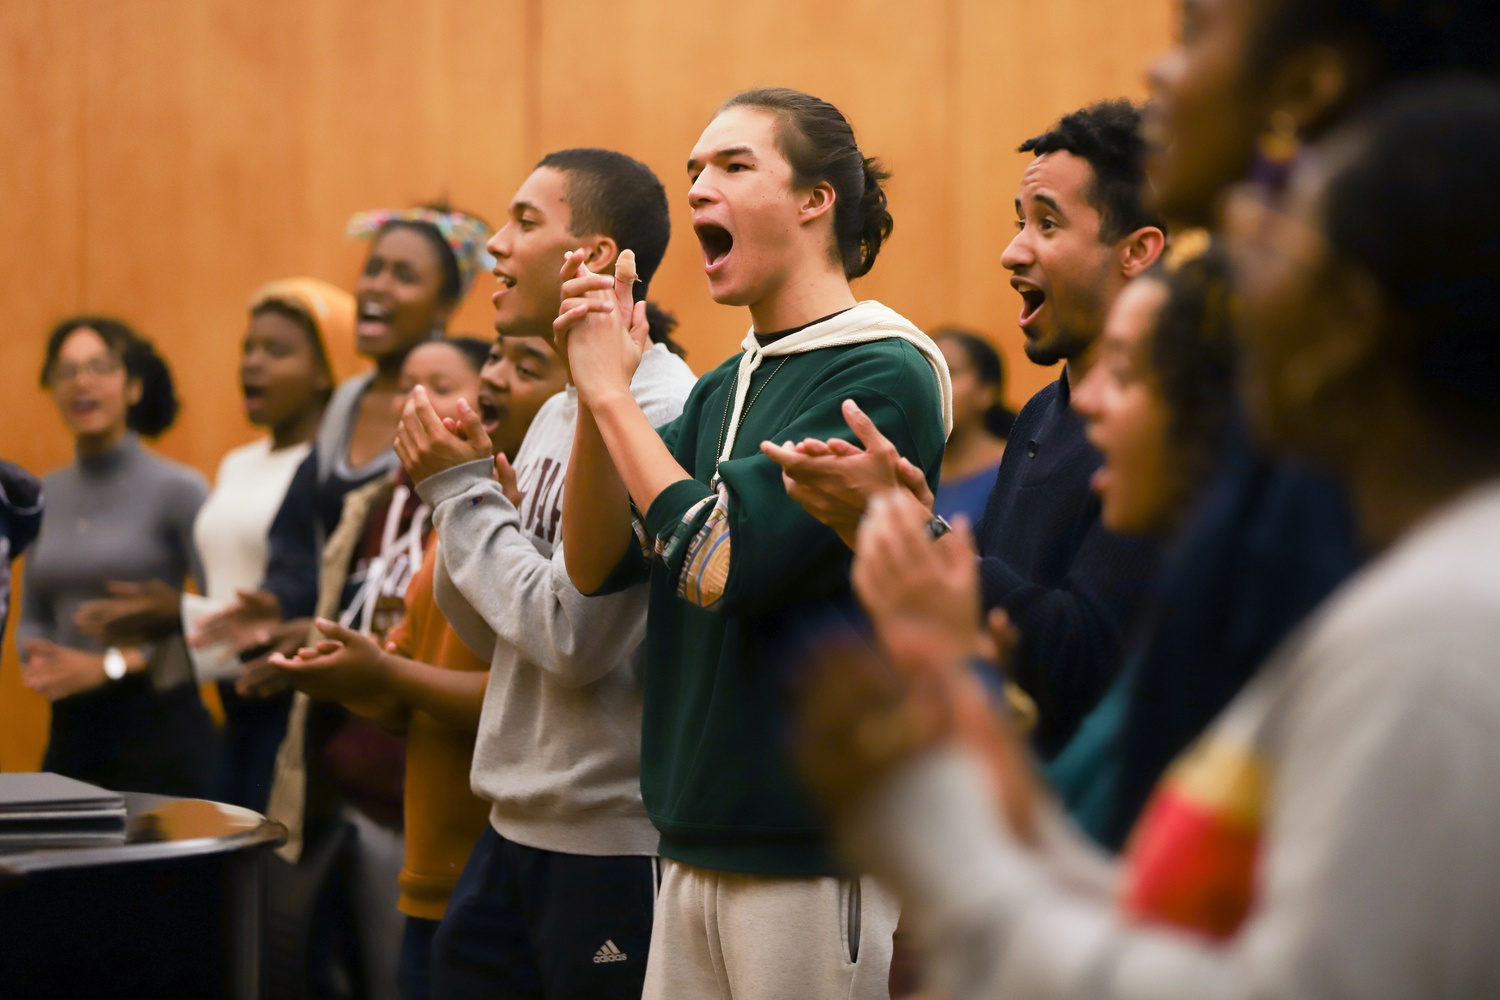 The Kuumba Singers of Harvard College clap and sing during a weekly rehearsal. Founded in 1970, Kuumba, the oldest existing Black organization at Harvard College, will celebrate its 50th anniversary this year.